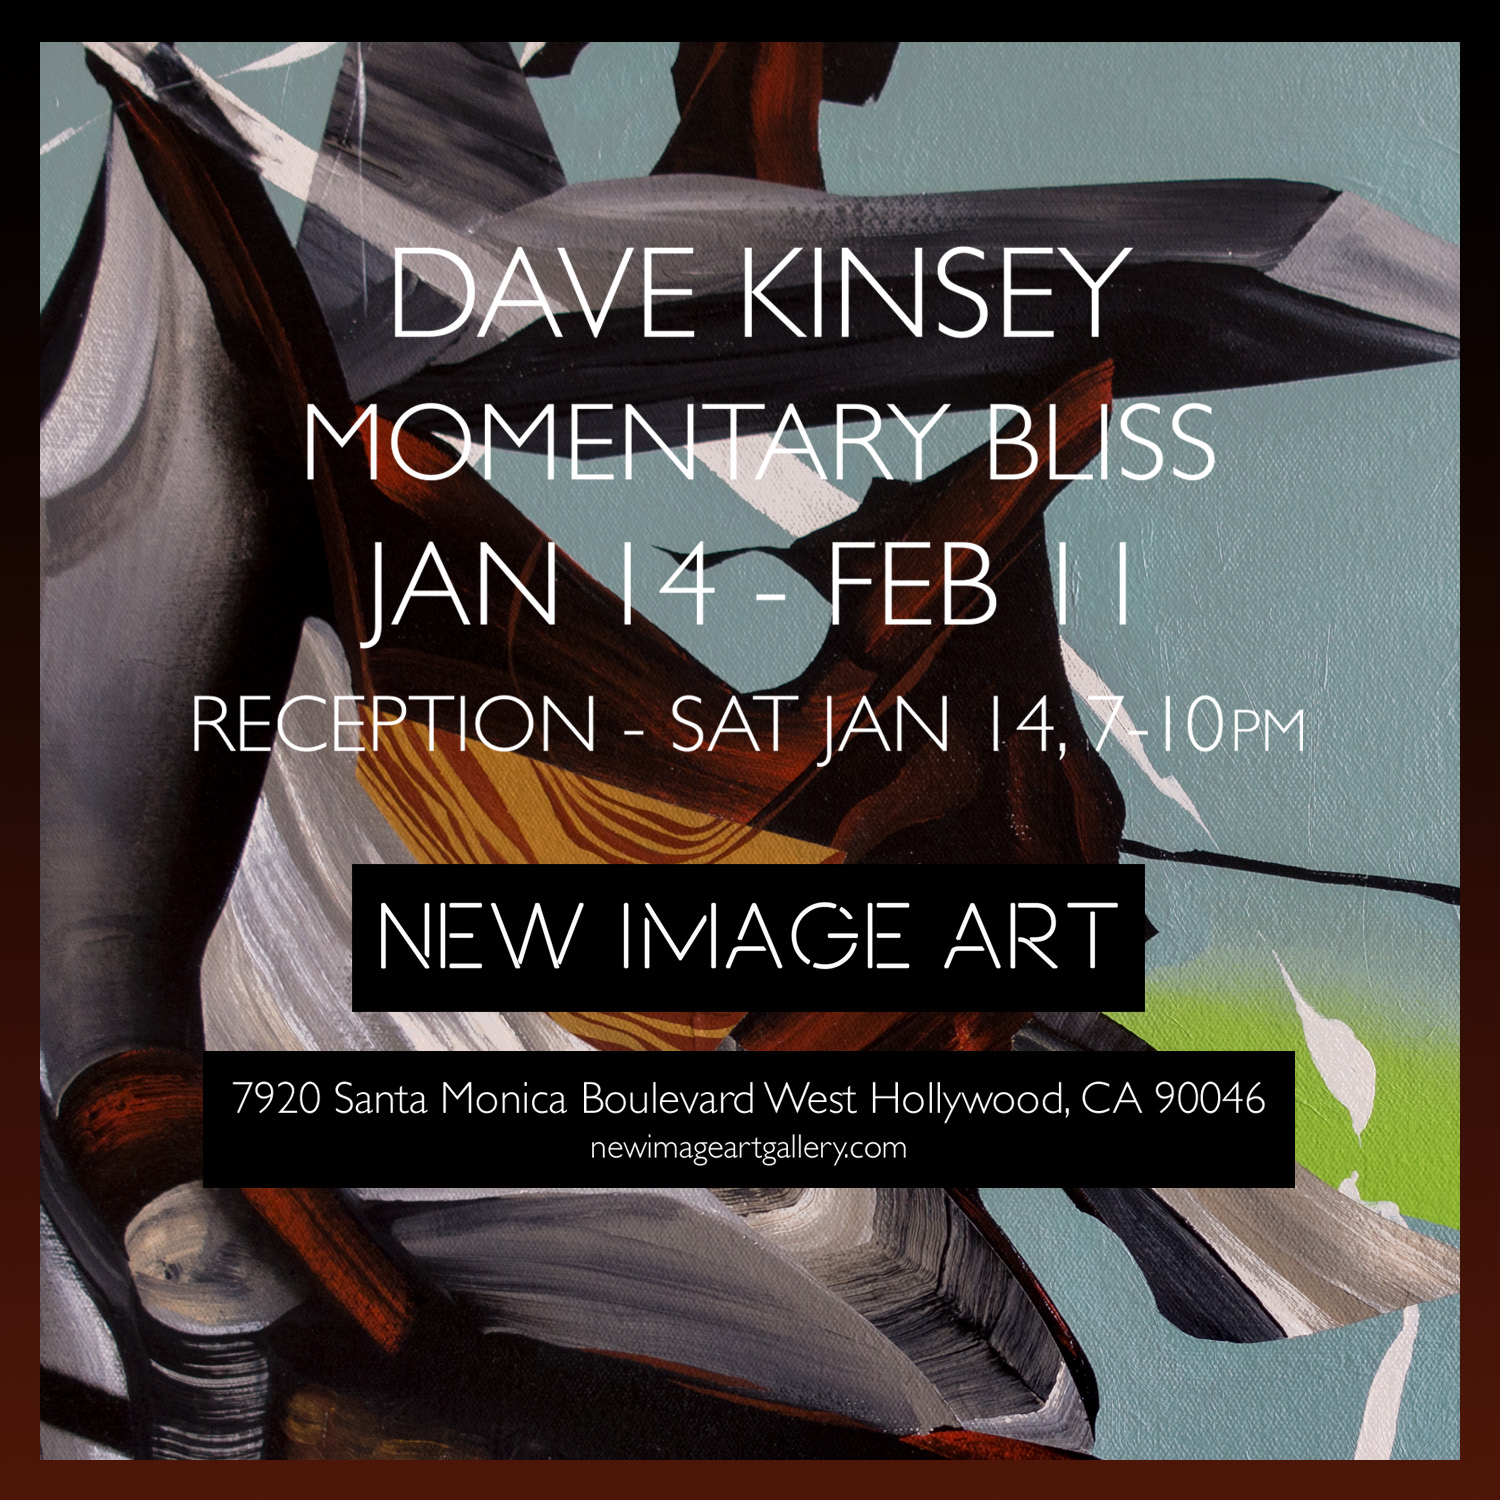 DAVE KINSEY - MOMENTARY BLISS